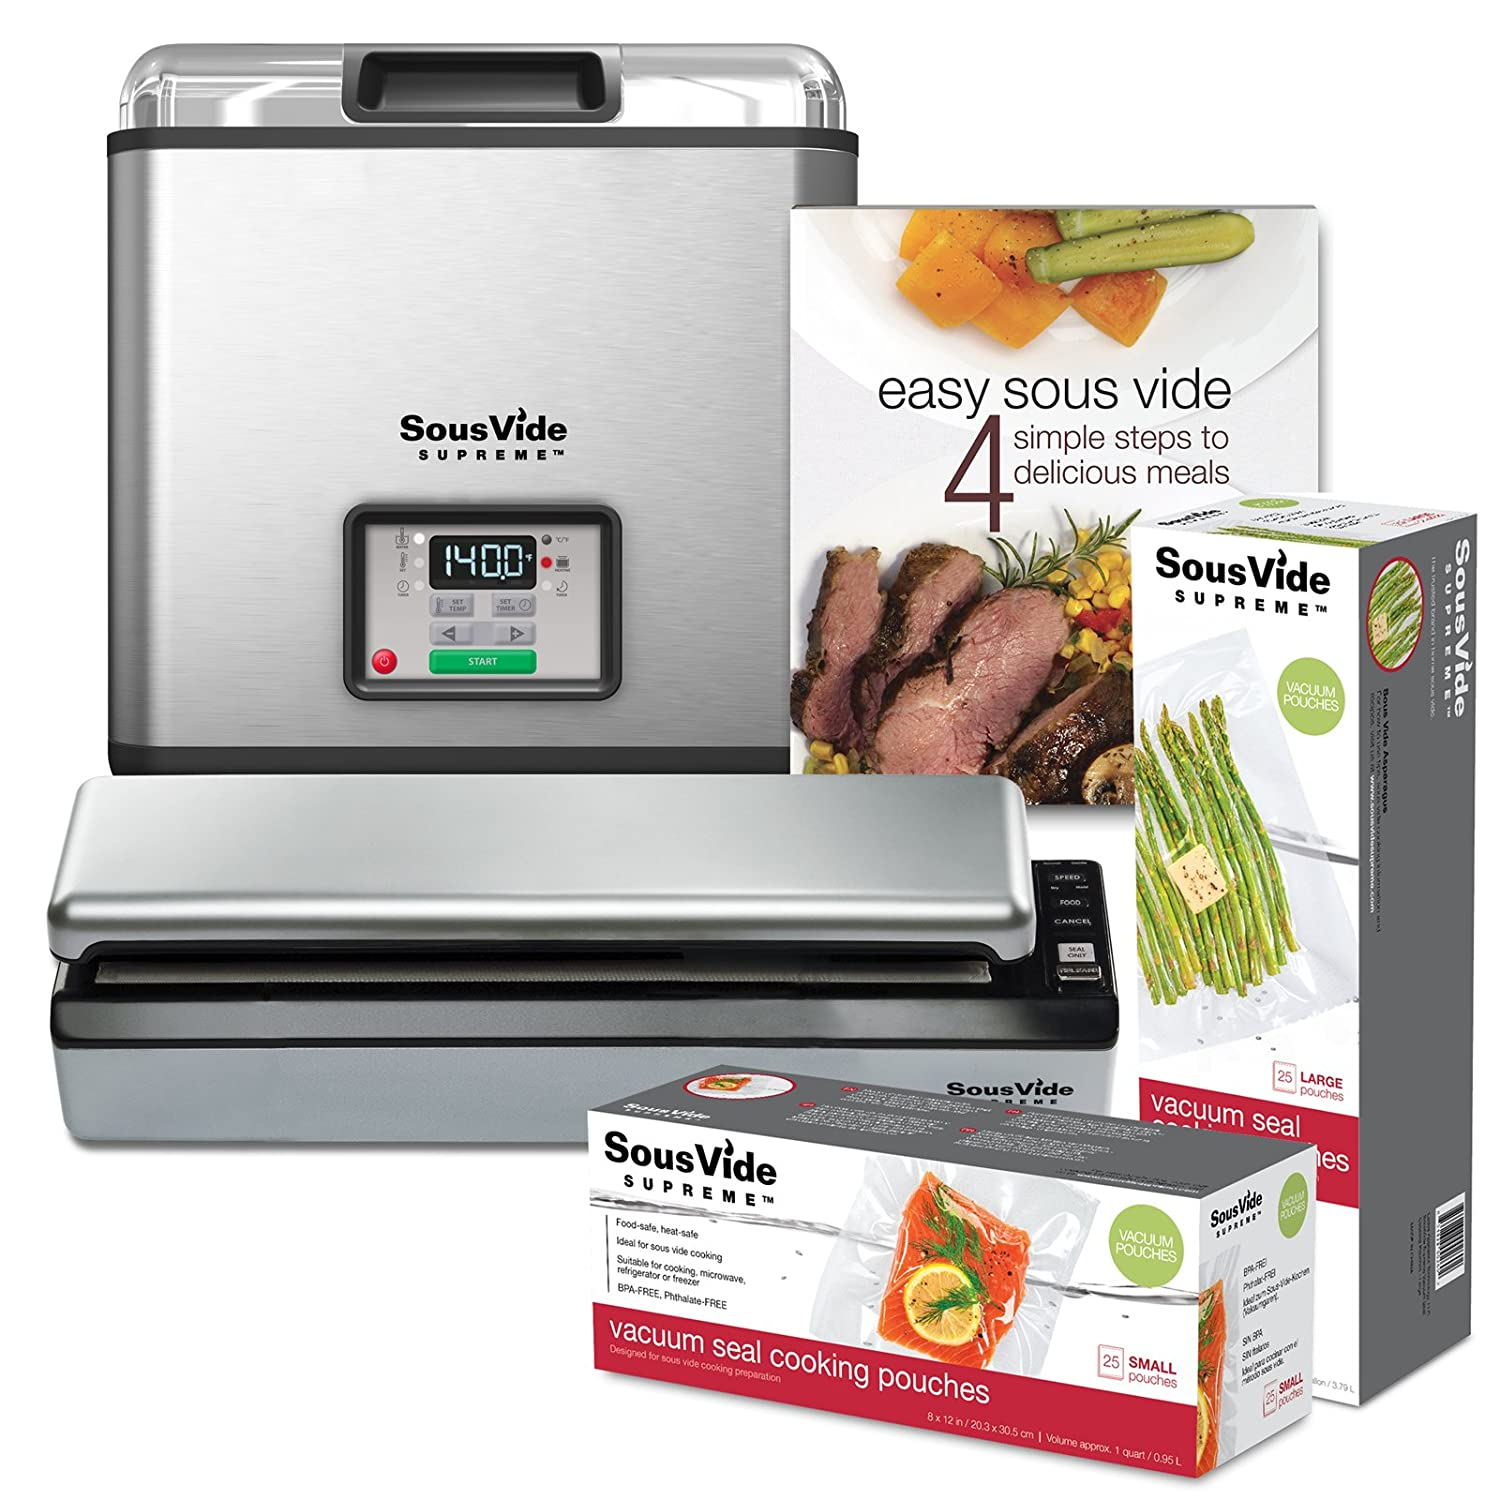 SousVide Supreme Water Oven 11-Liter System Complete with Vacuum Sealer, Cookbook and over 50 Sealer Bags